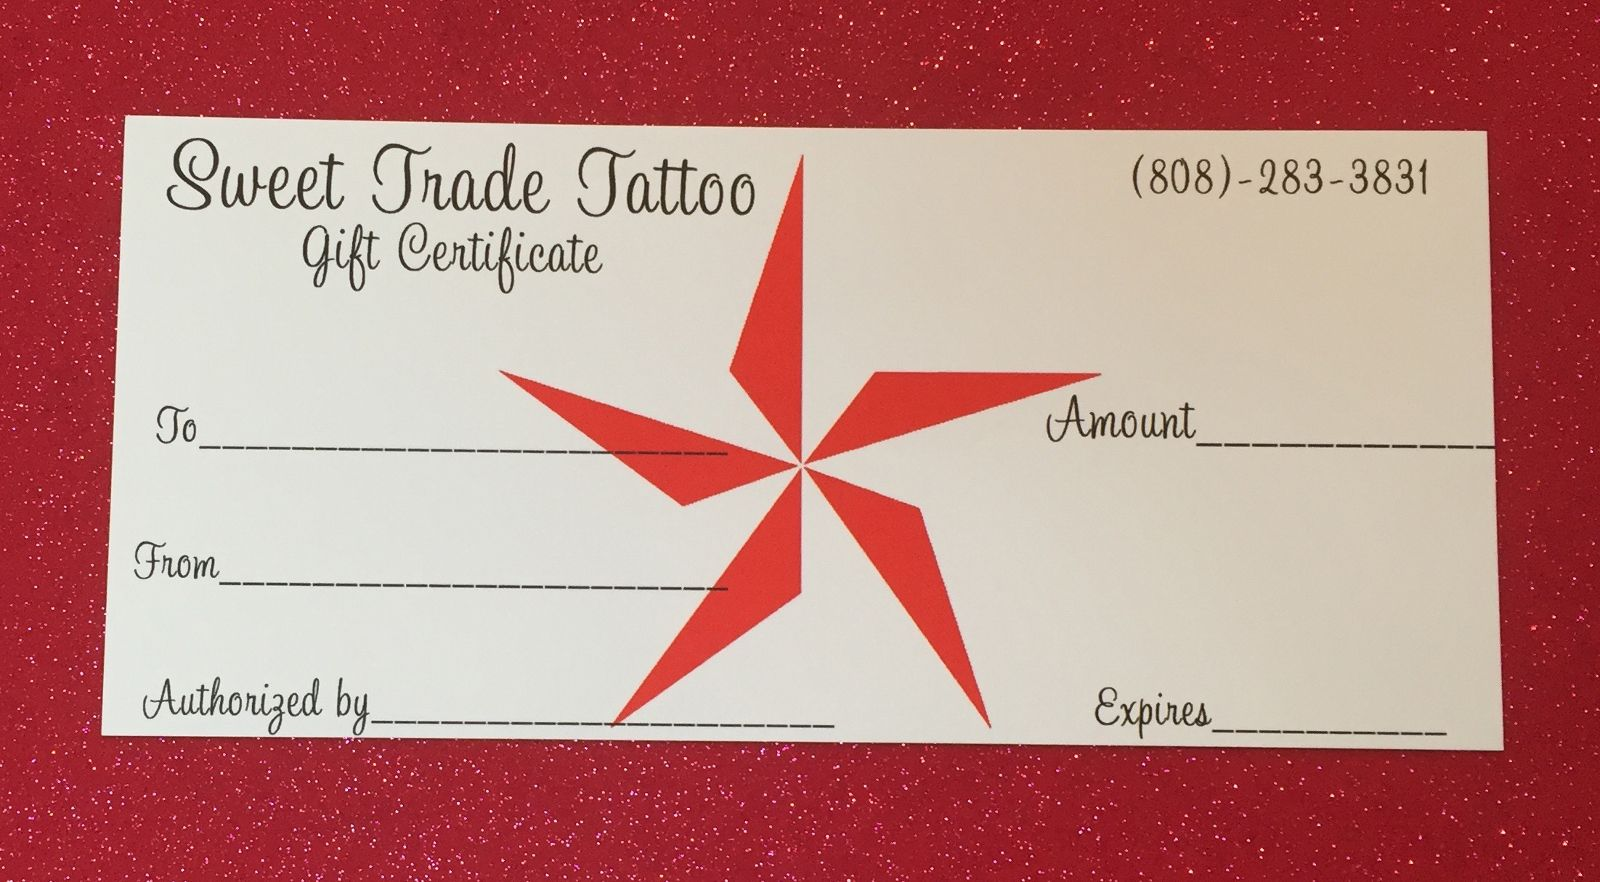 Black friday deals tattoonow for Black friday tattoo deals